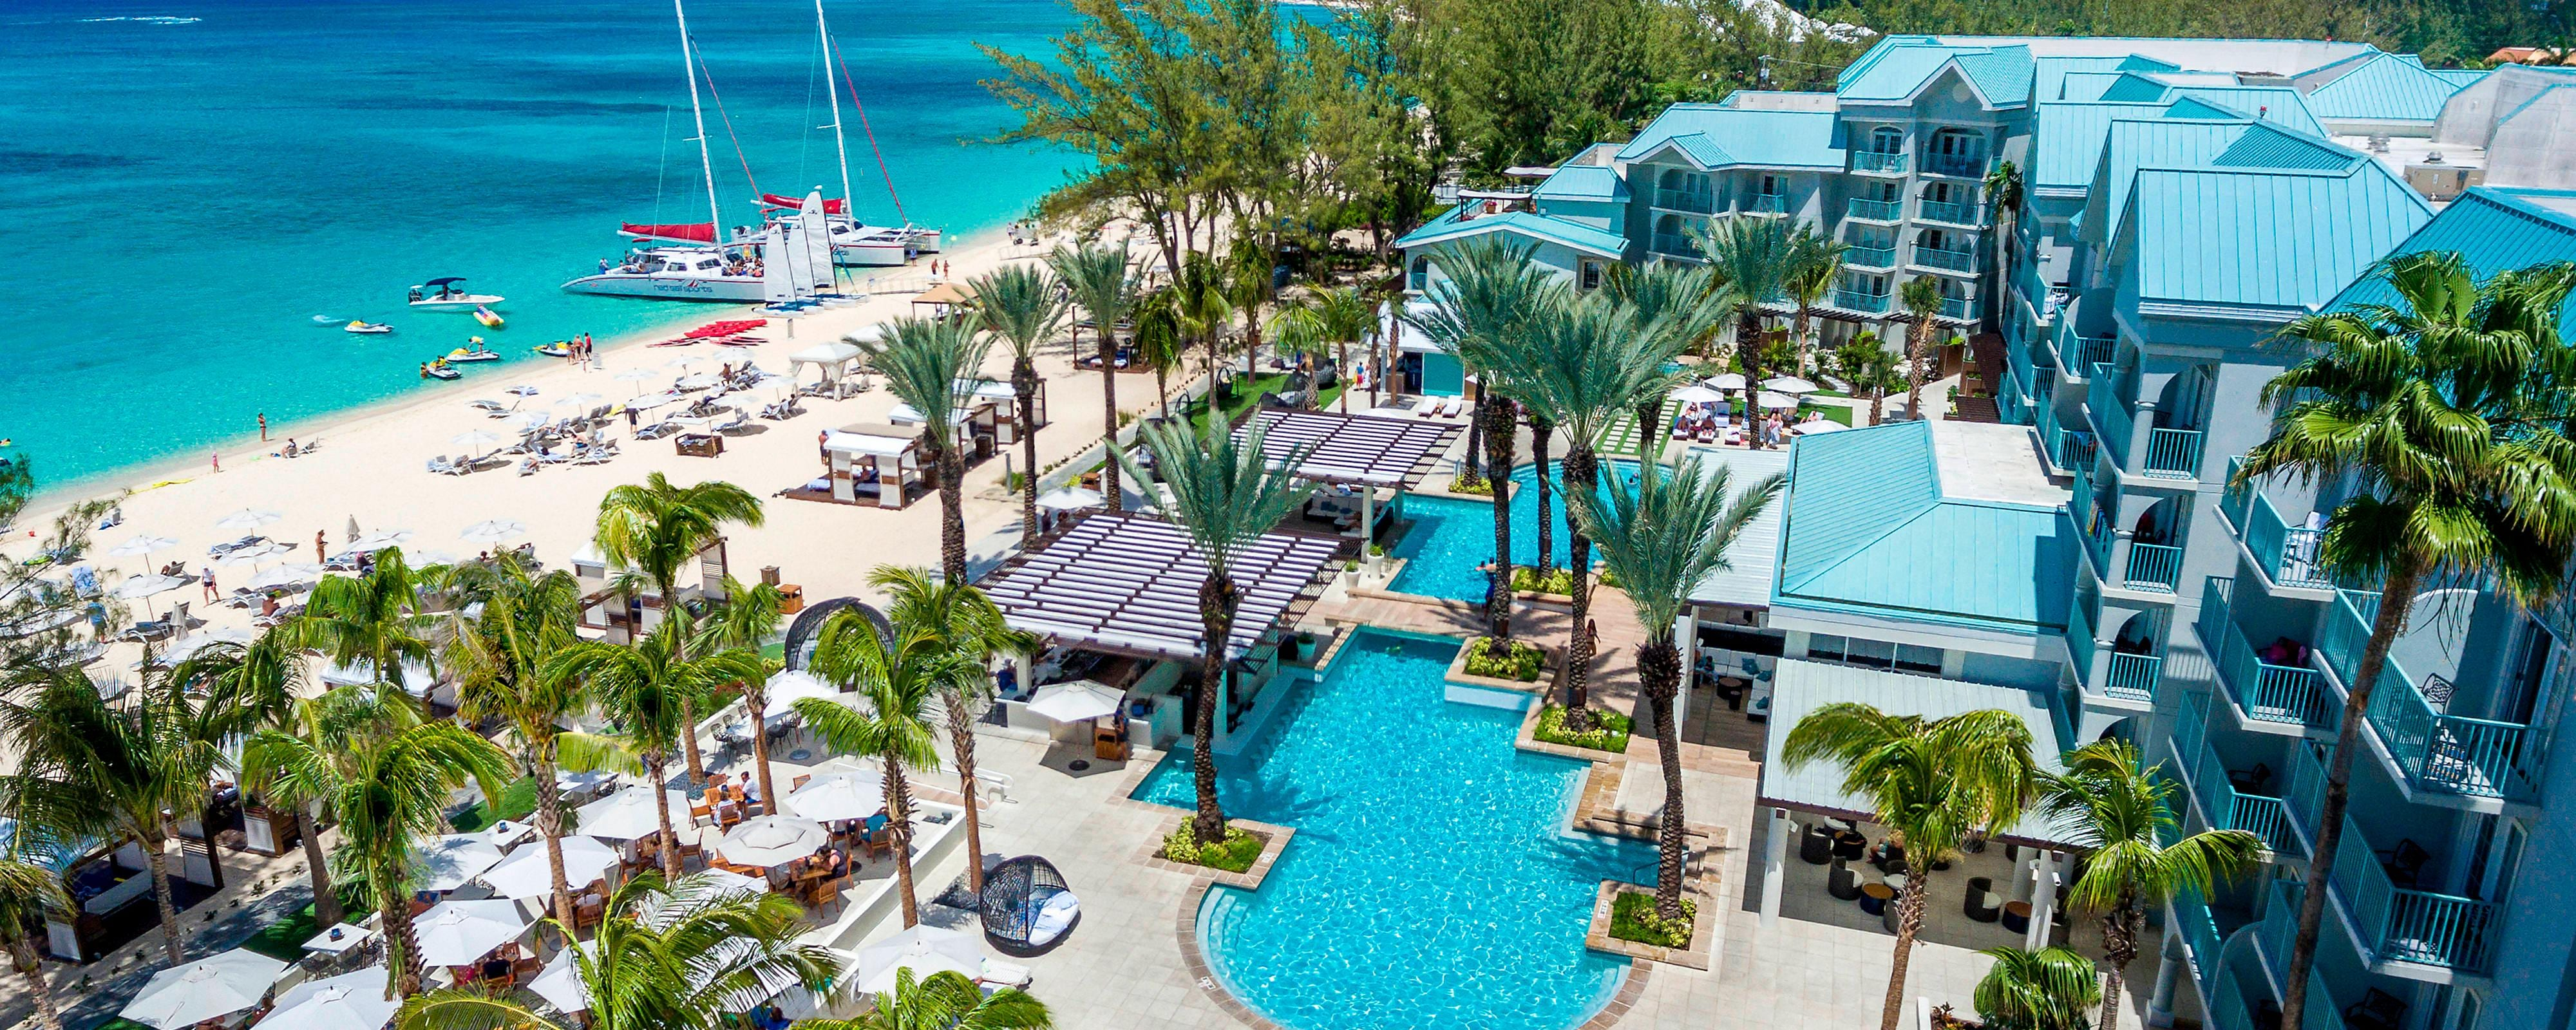 Westin Grand Cayman Pool Beach